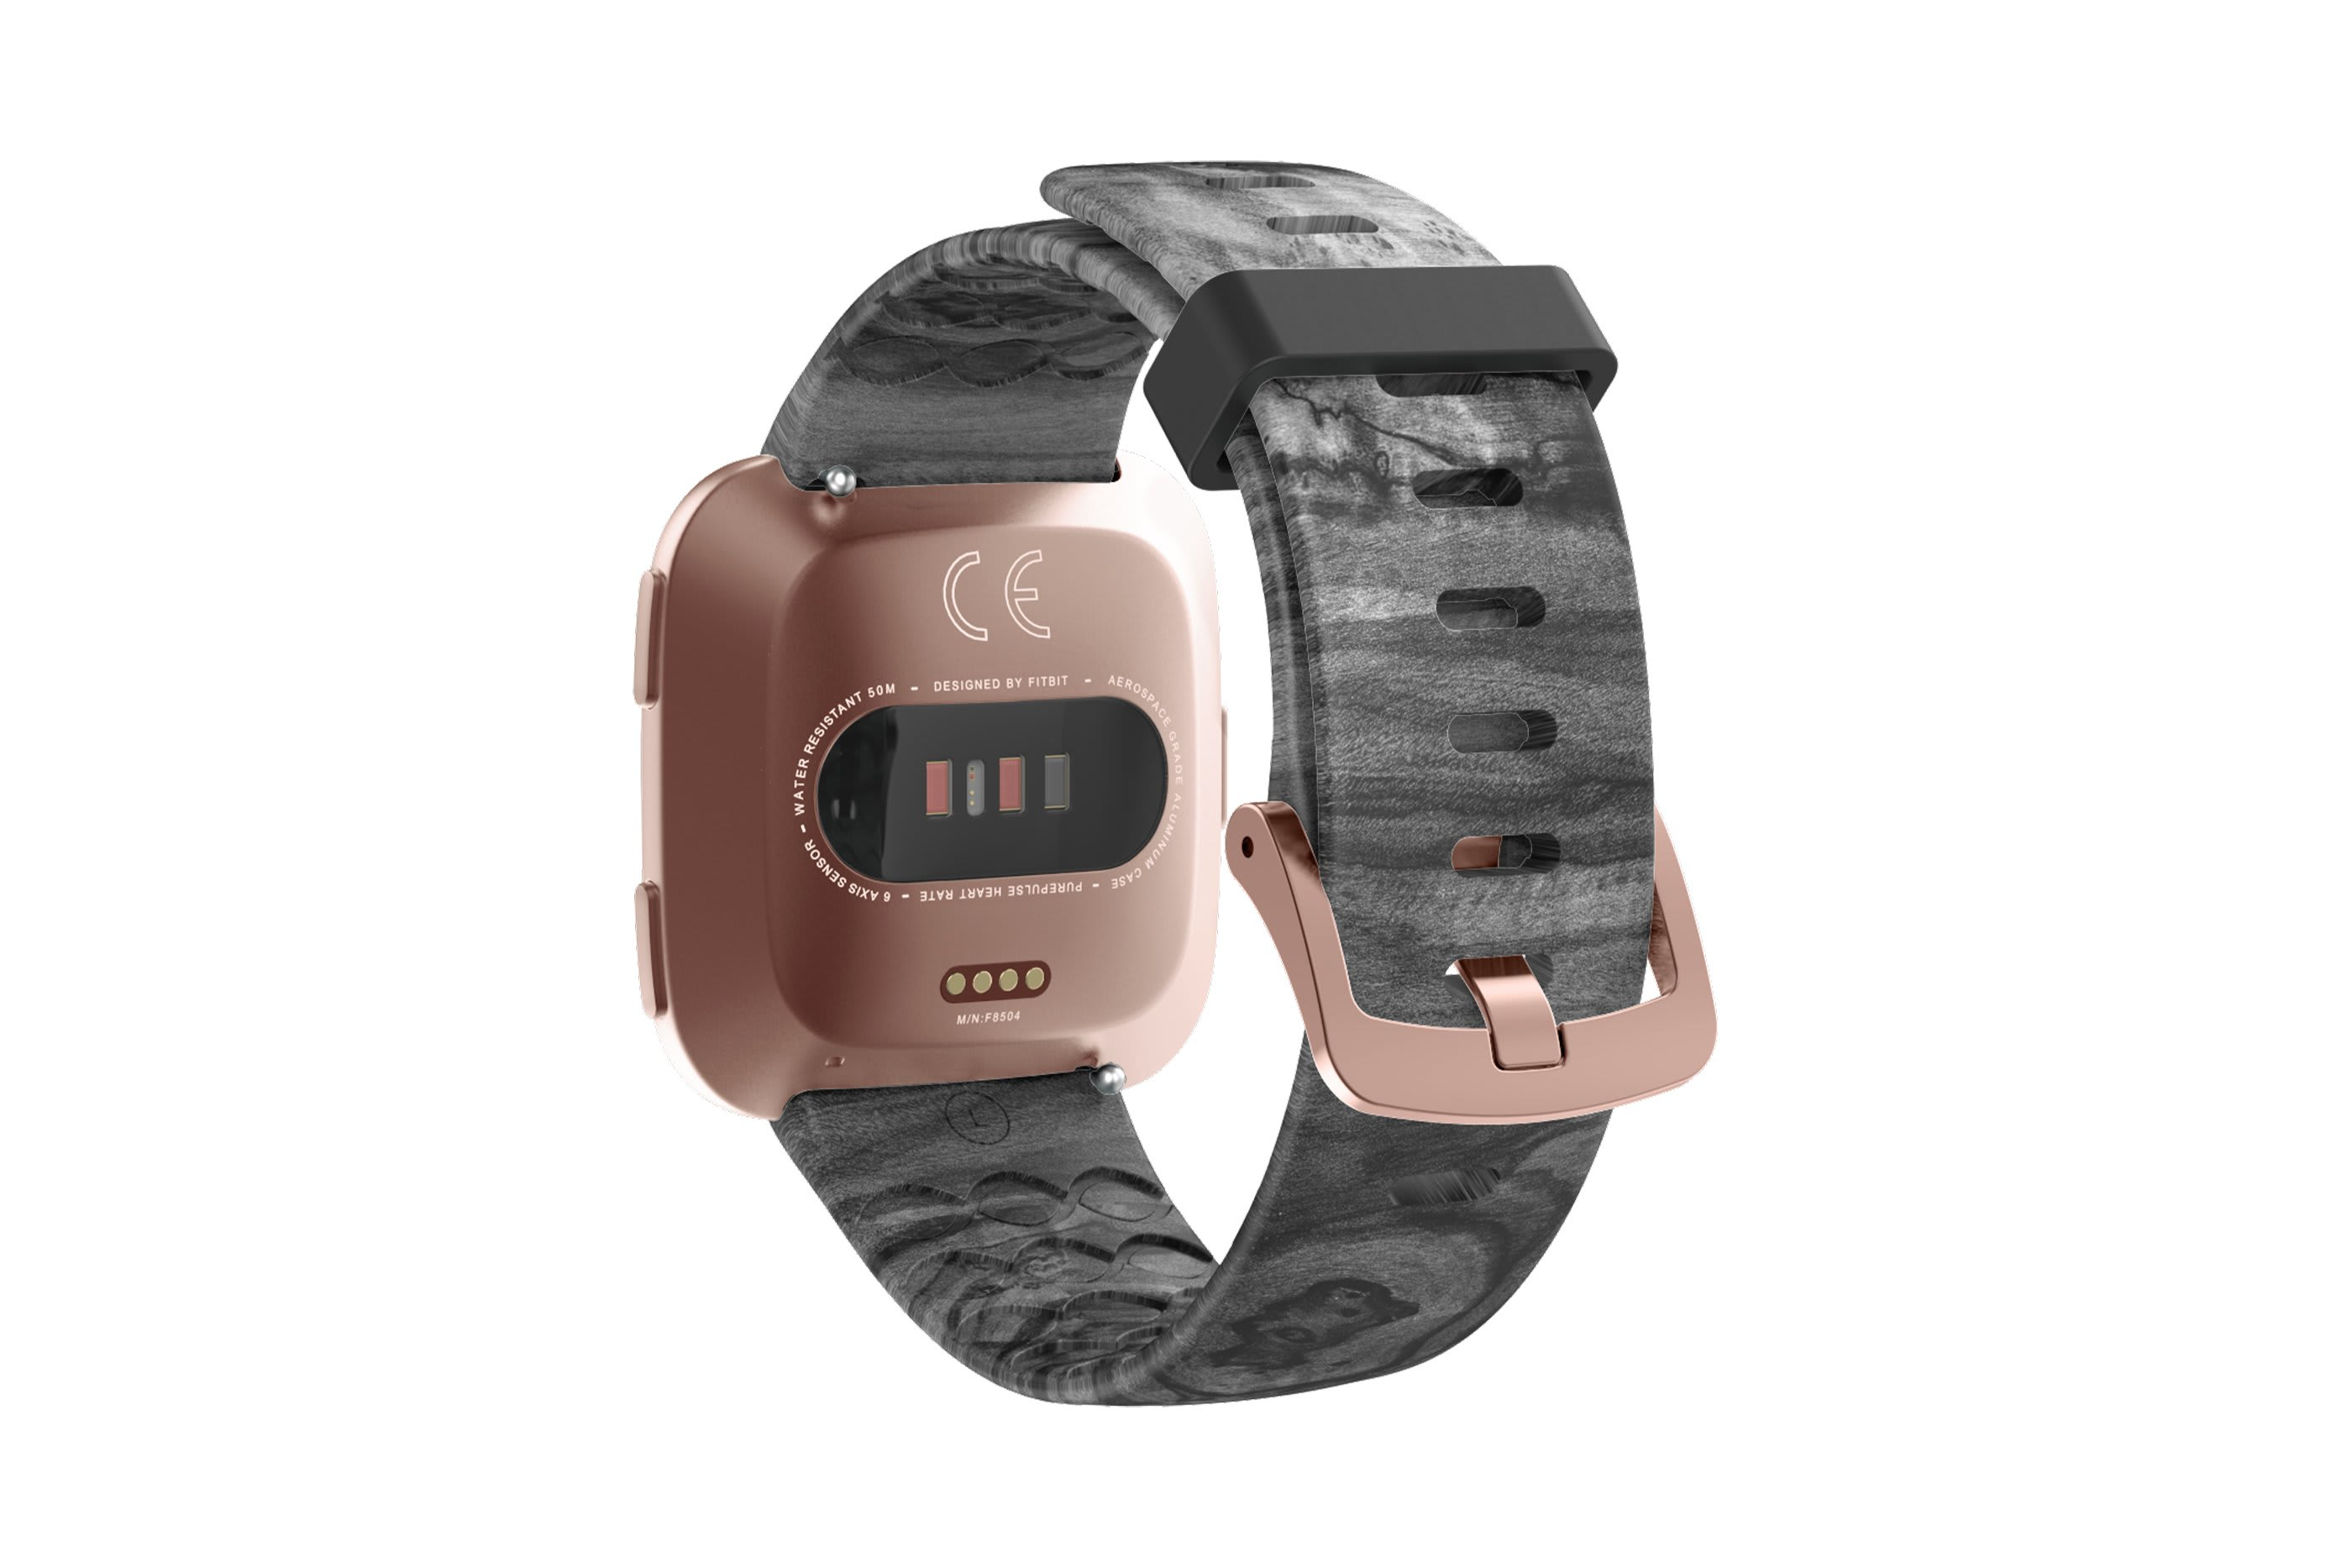 Nomad Relic fitbit versa watch band with rose gold hardware viewed from top down